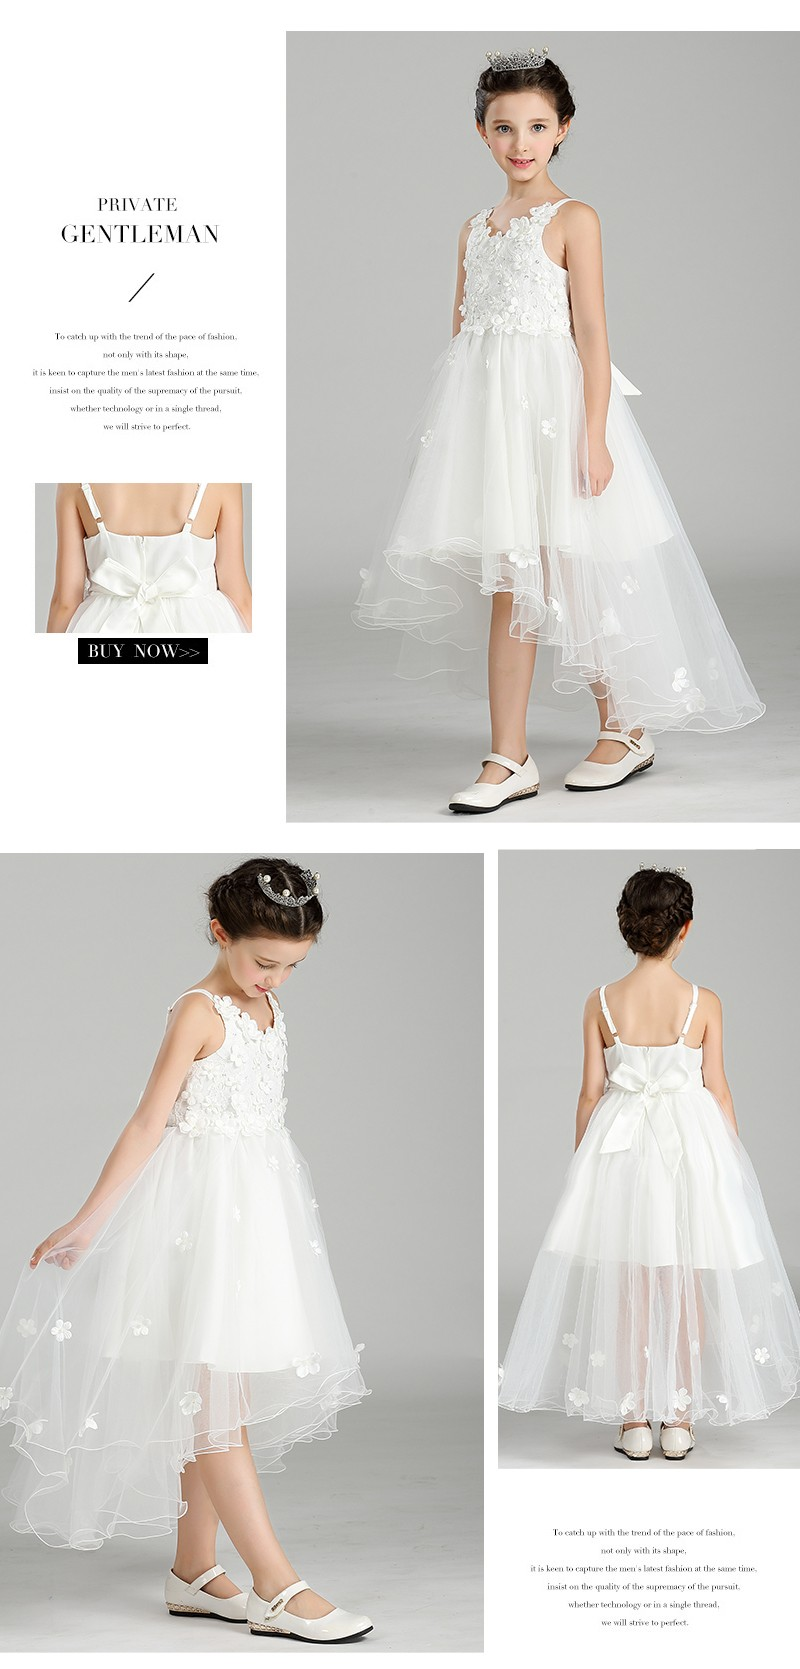 8260daa7792 Top Quality Wholesale Little Girls Lace Traling Spaghetti Strap Flower  Girls Wedding Dresses T238